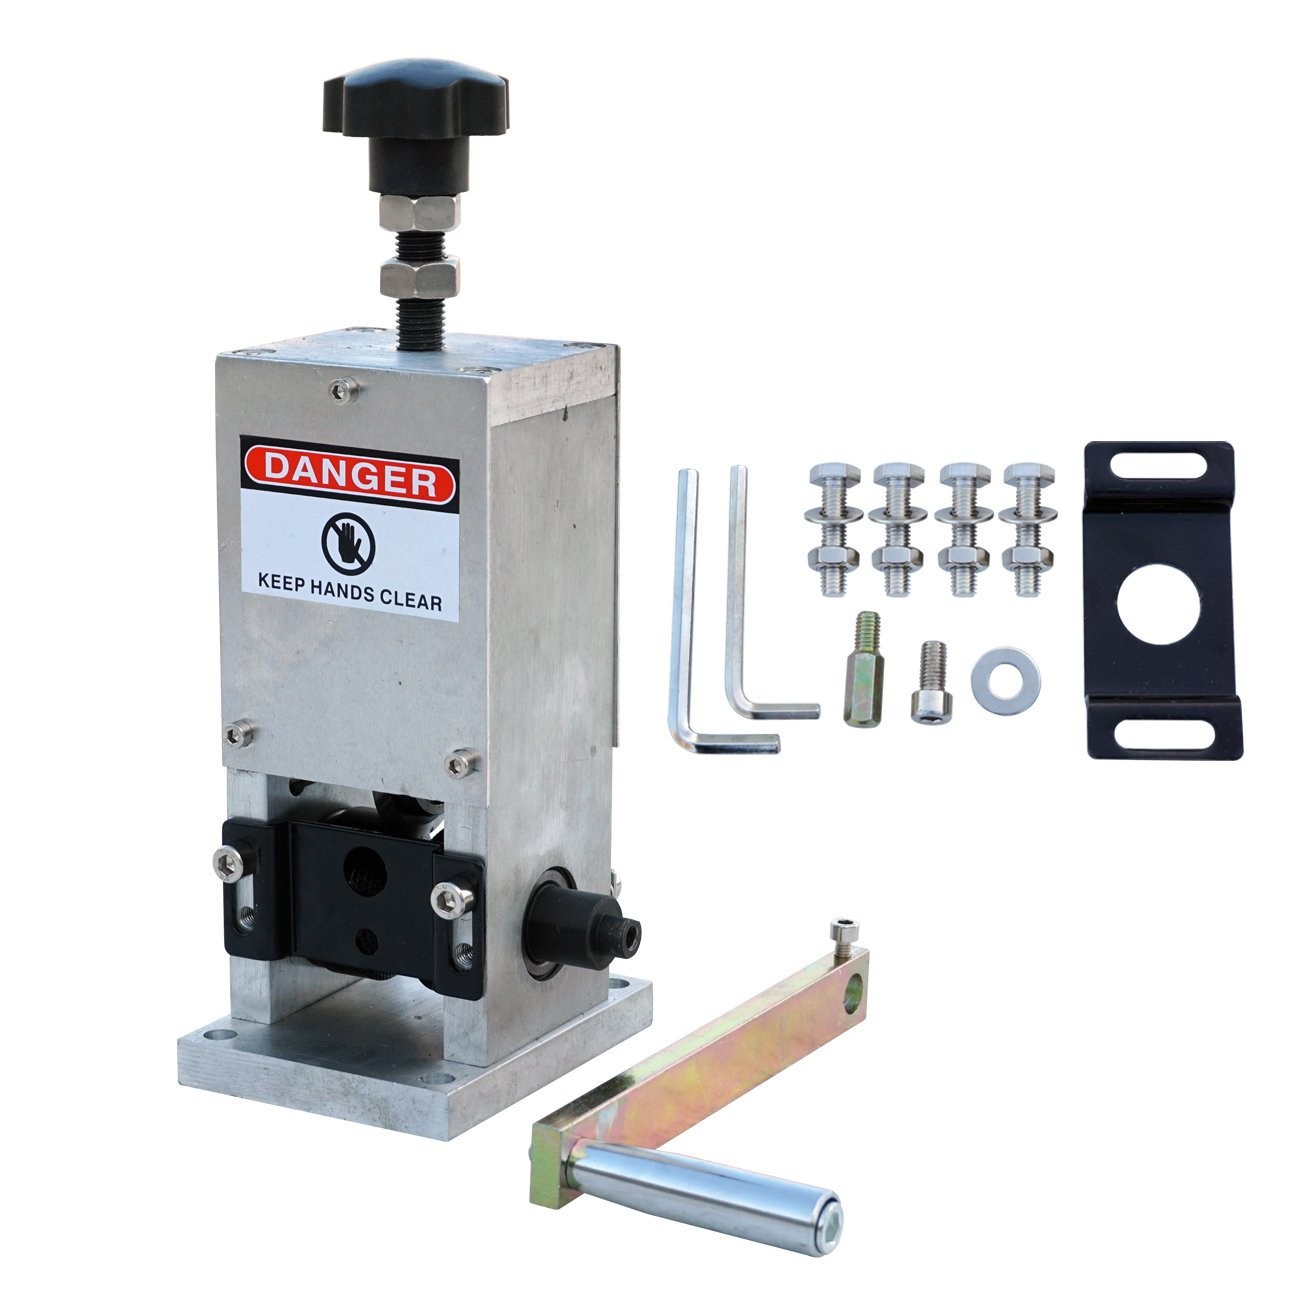 ECO LLC Durable Copper Wire Stripping Machine Hand Crank Drill Operated Cable Stripper